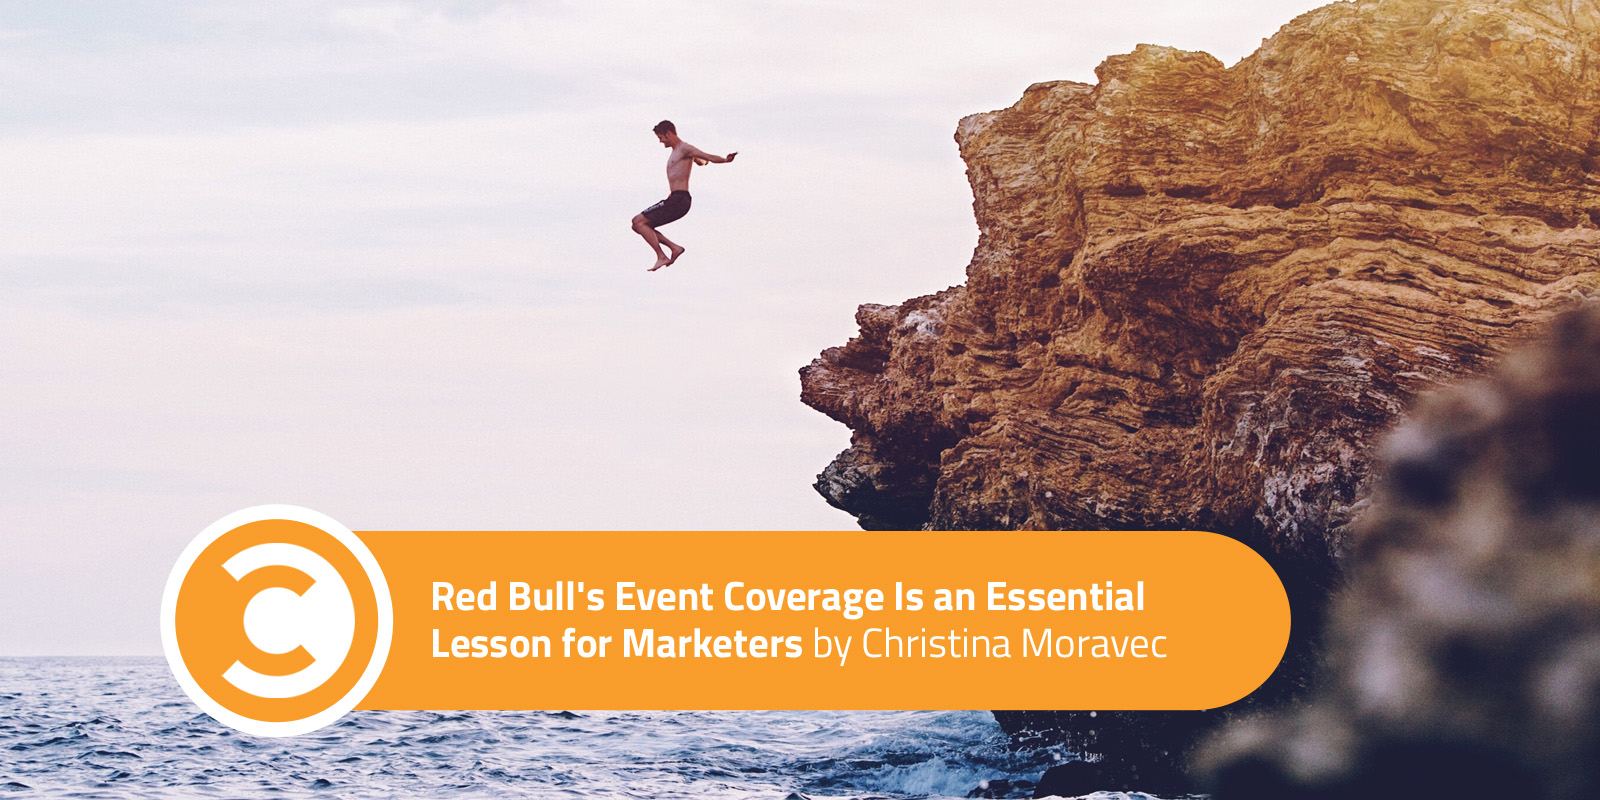 Red Bull's Event Coverage Is an Essential Lesson for Marketers